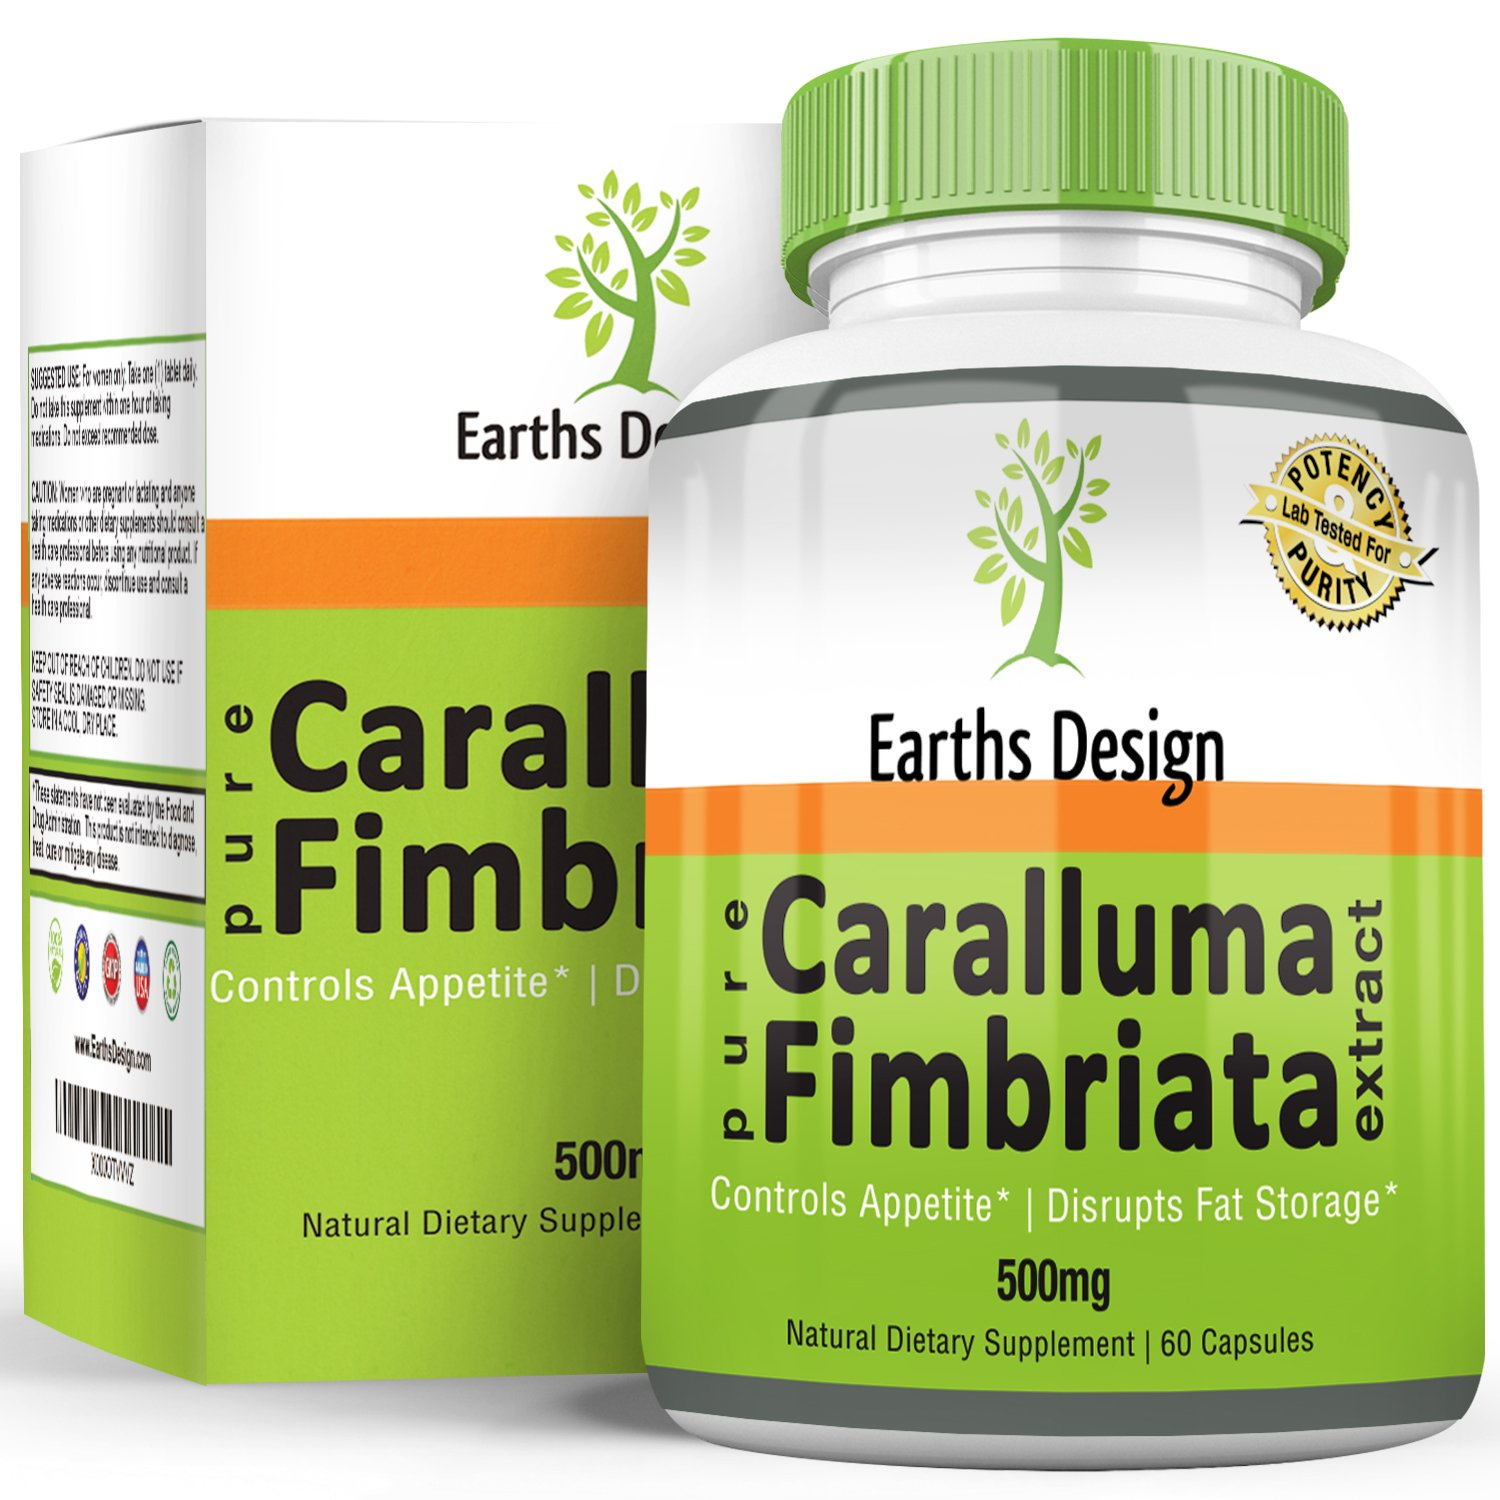 Earths Design Caralluma Fimbriata Diet Pill And Appetite Suppressant Maximum Strength For Weight Loss Boosts Metabolism A Carb Blocker That Helps